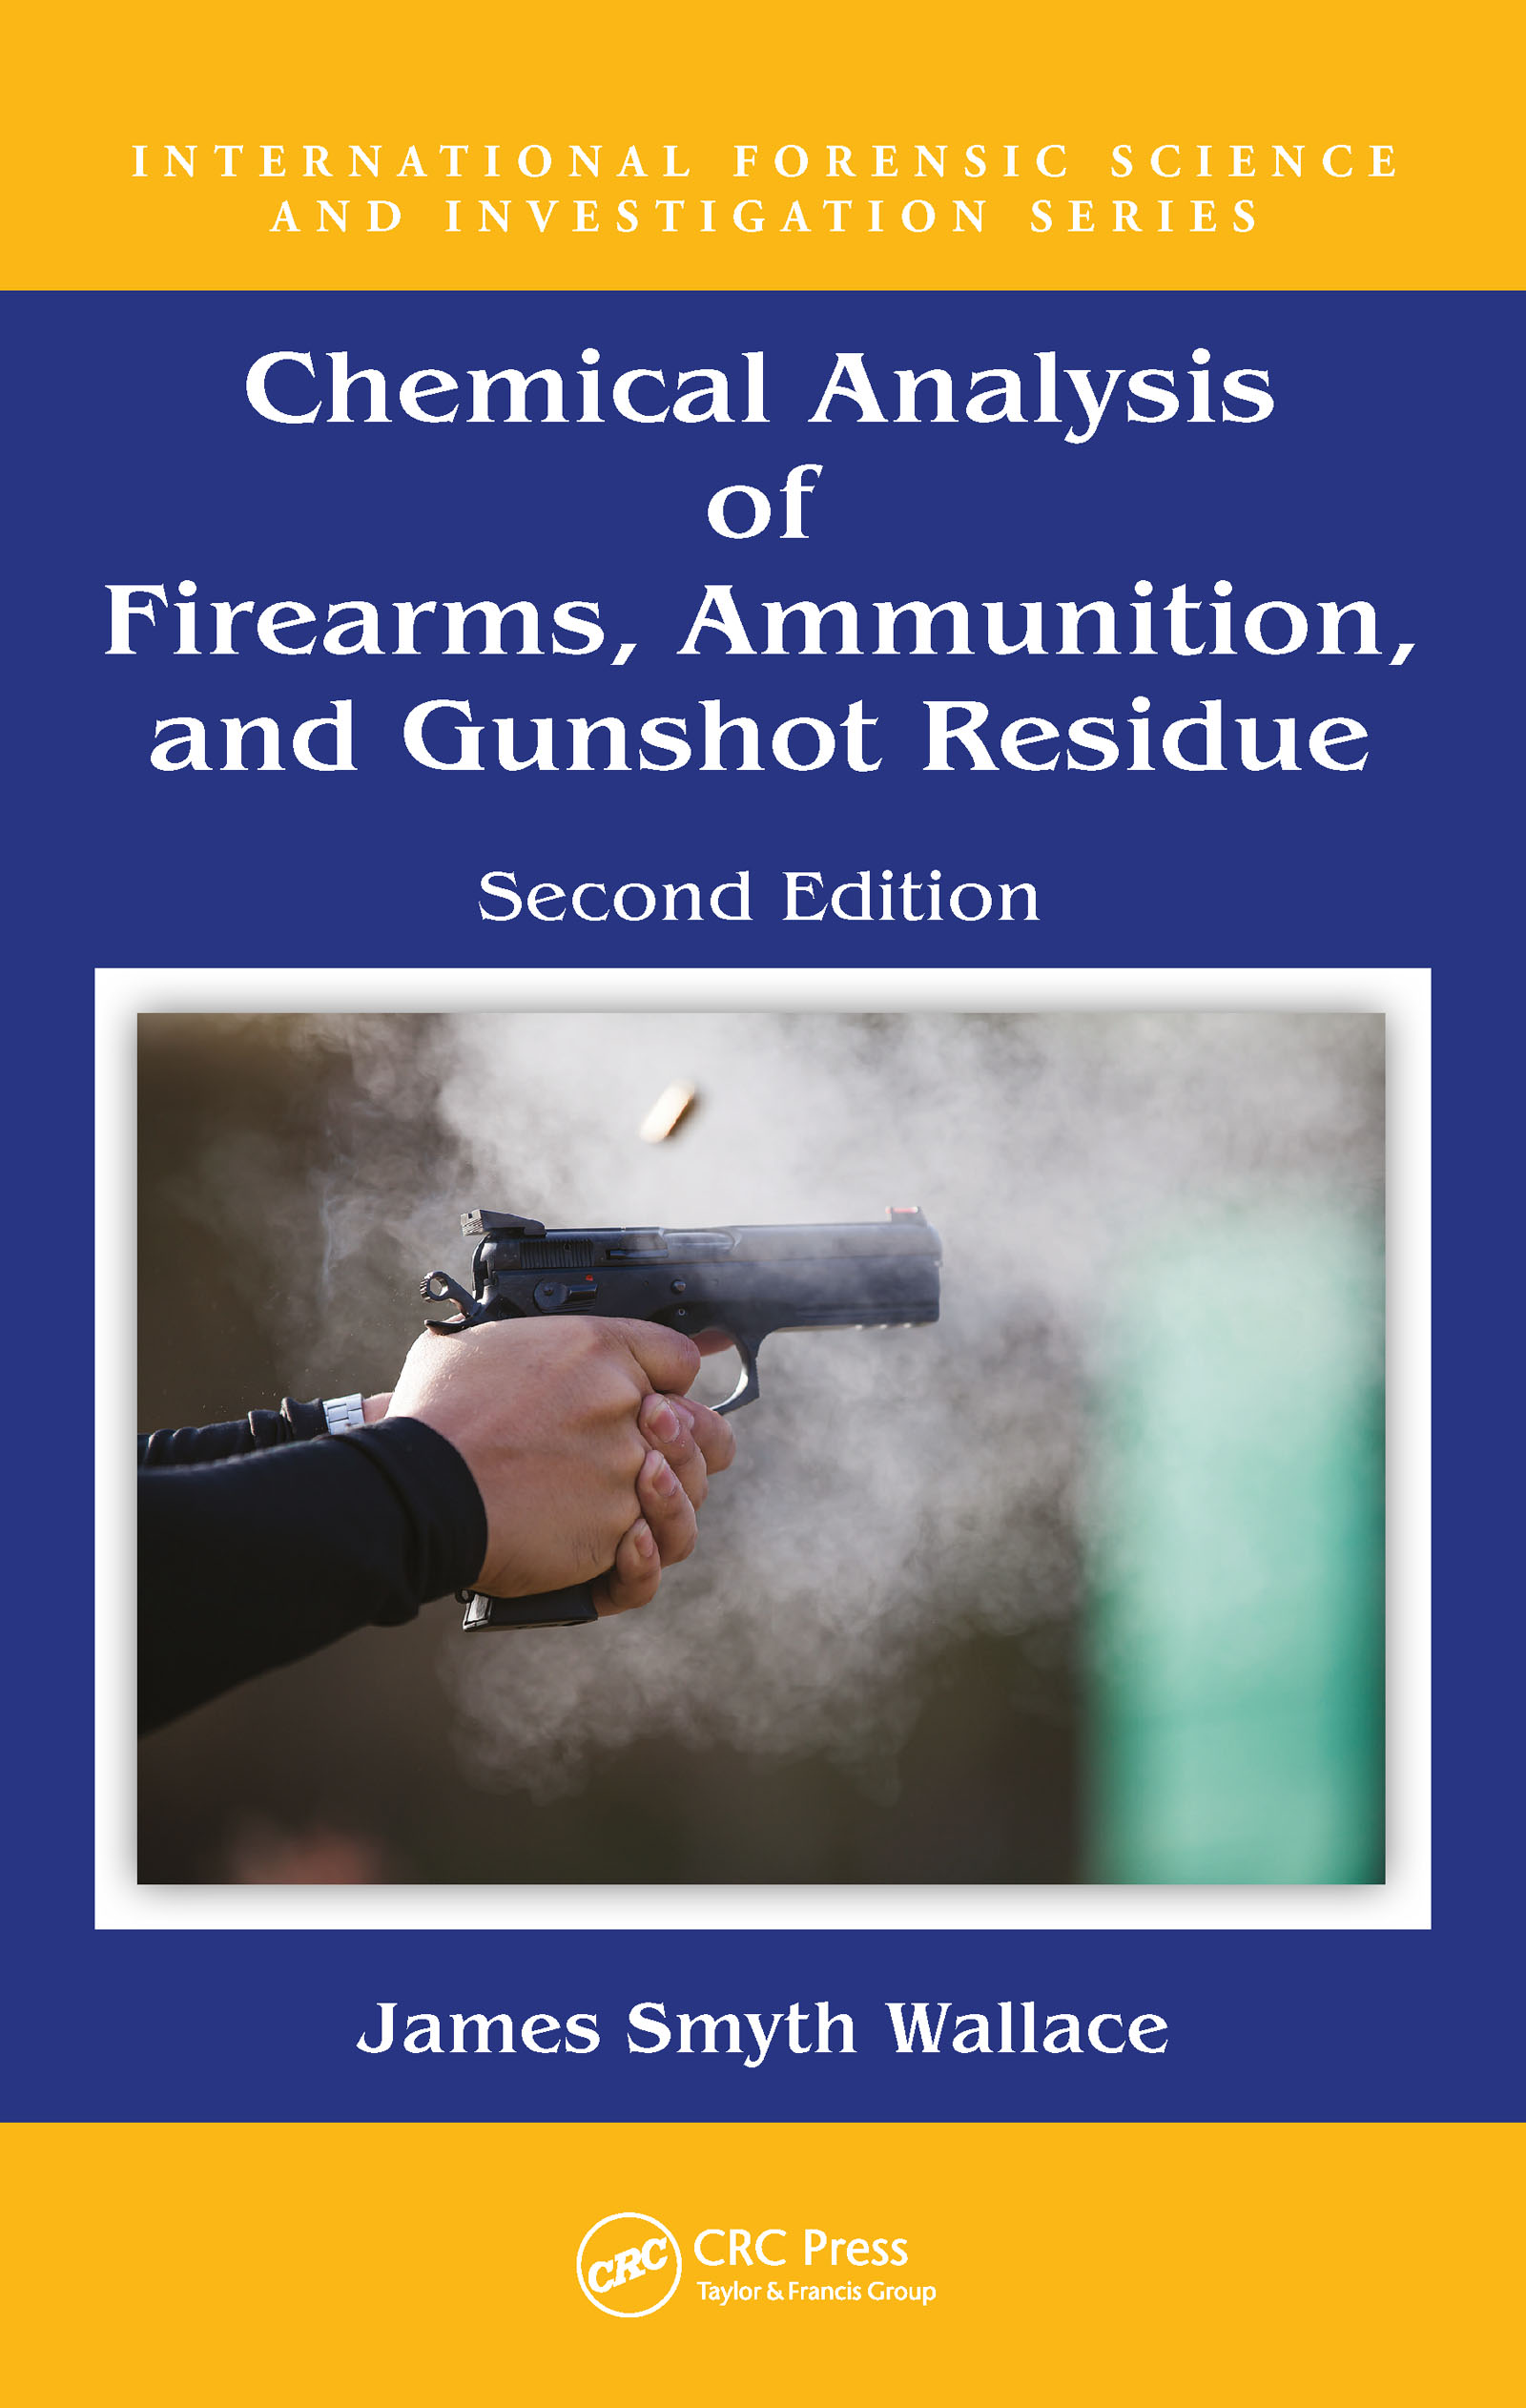 Chemical Analysis of Firearms, Ammunition, and Gunshot Residue, Second Edition: 2nd Edition (Hardback) book cover